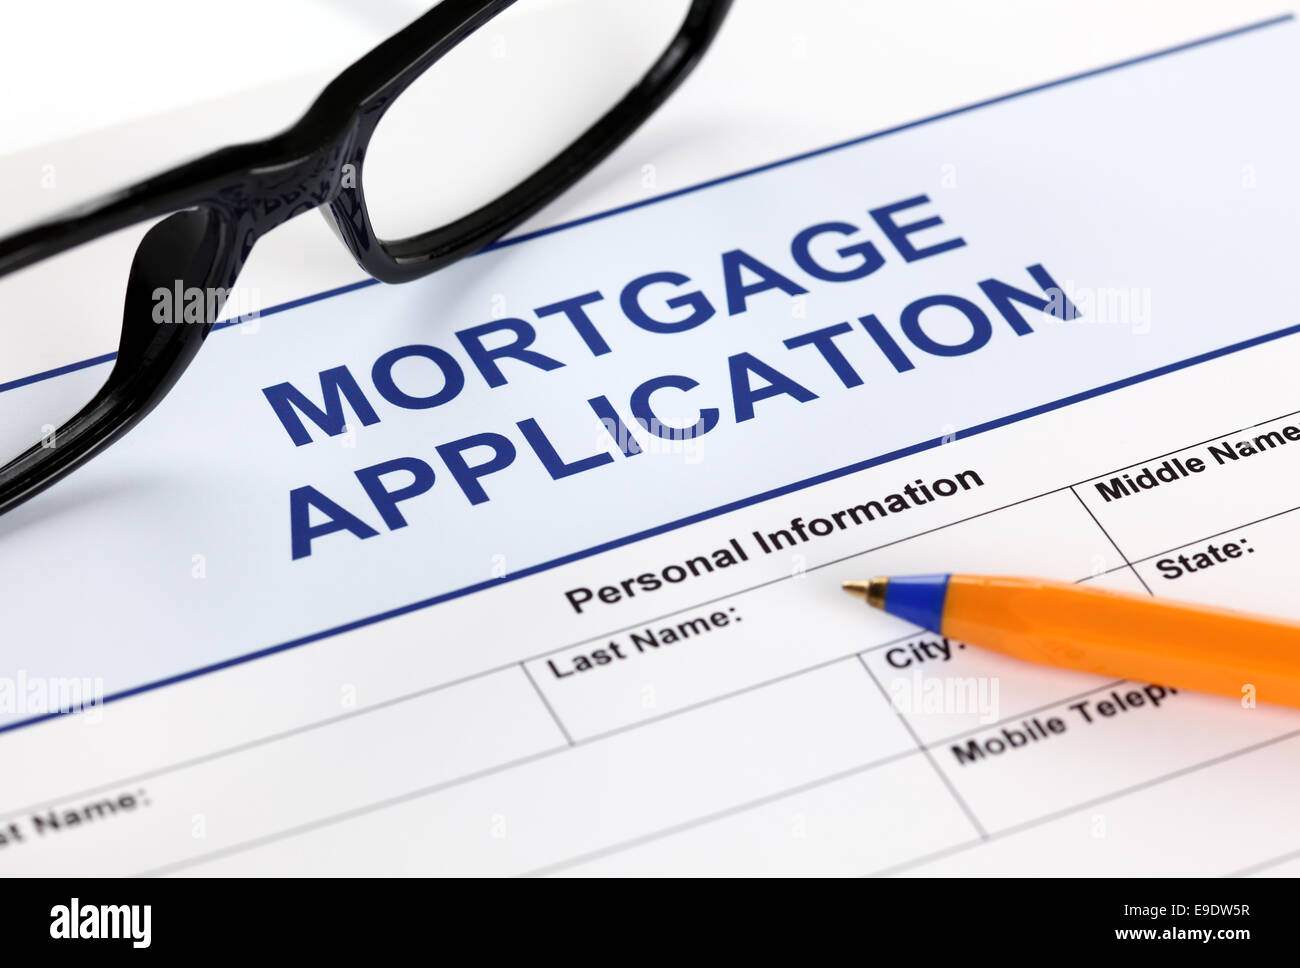 Mortgage application form with glasses and ballpoint pen. Stock Photo